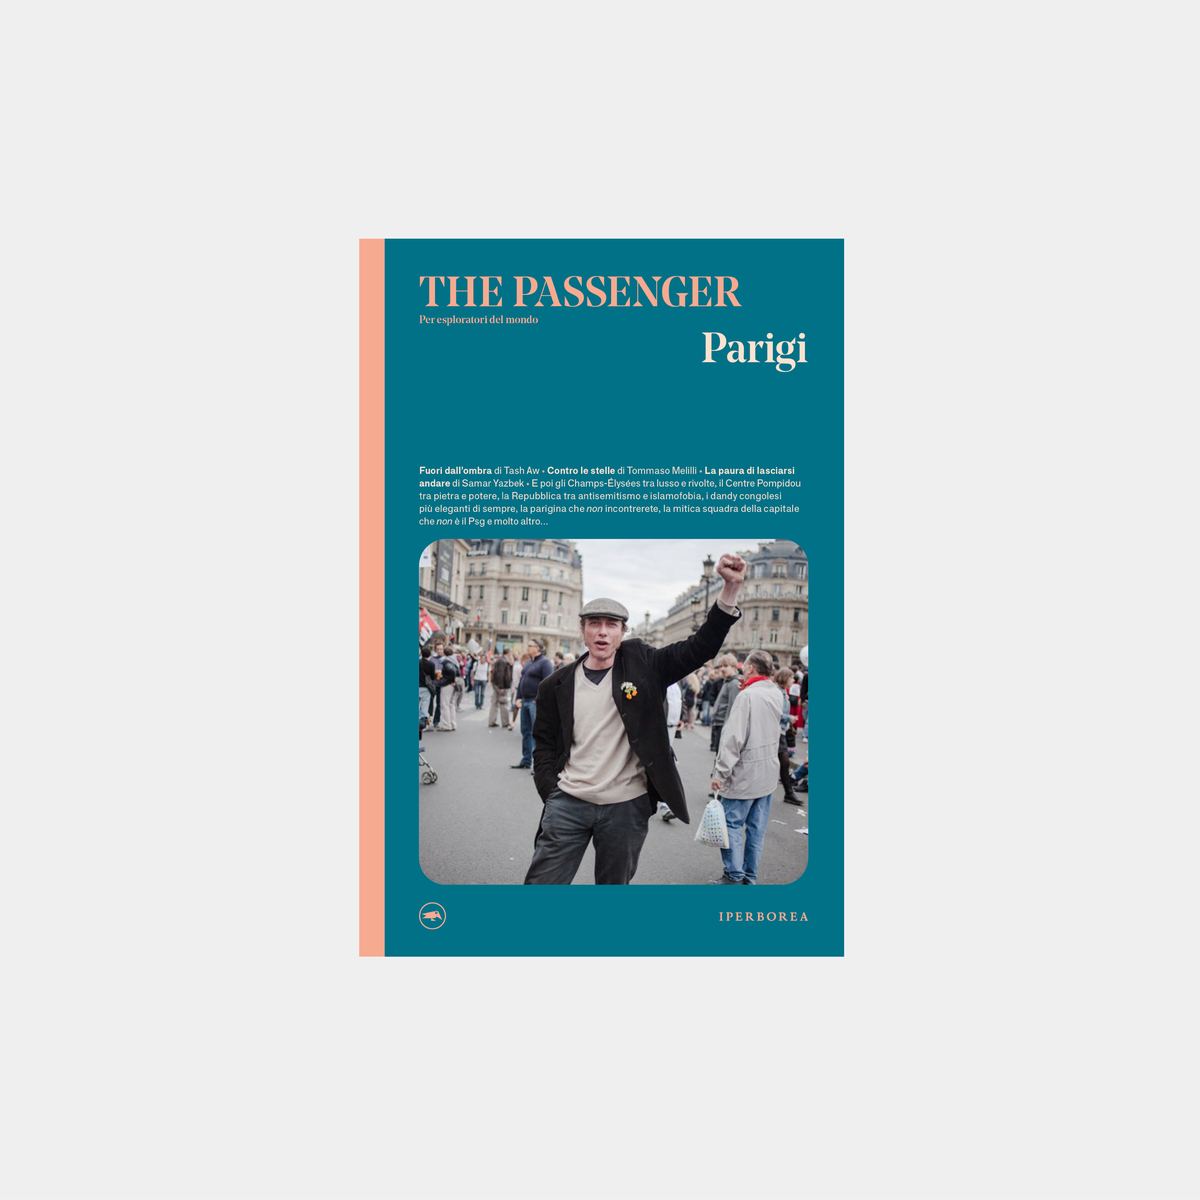 Image of The Passenger - Parigi